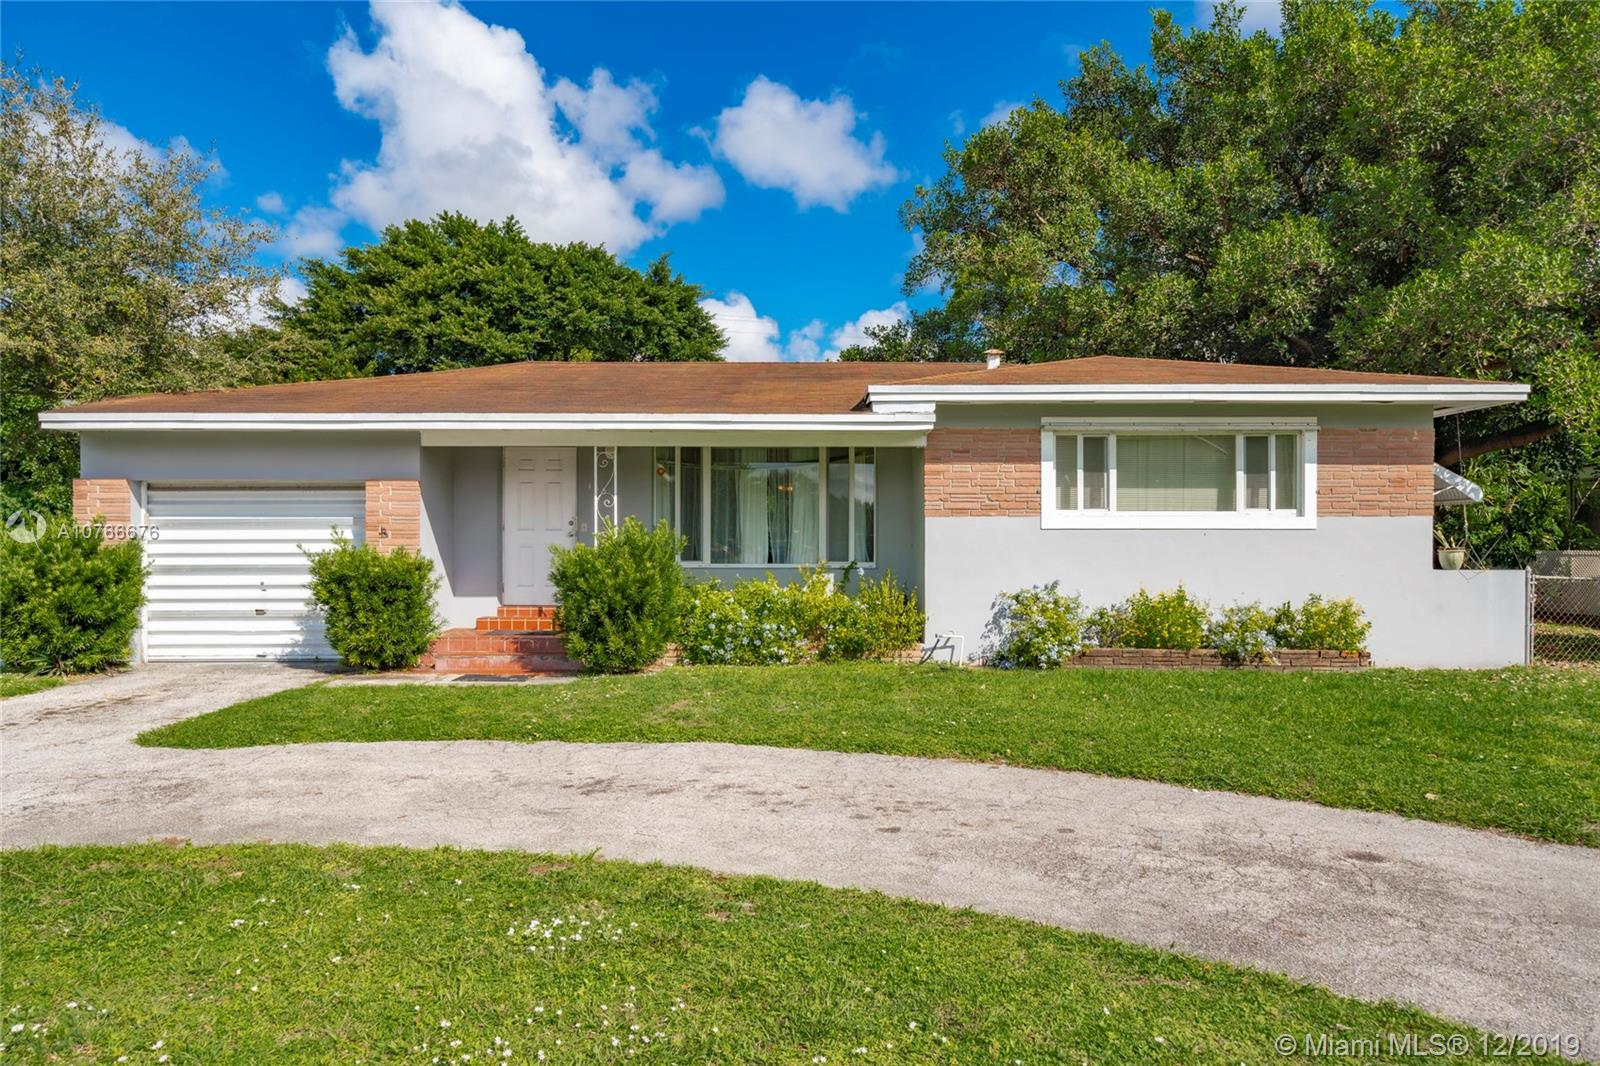 185 NW 115th St - Miami, Florida